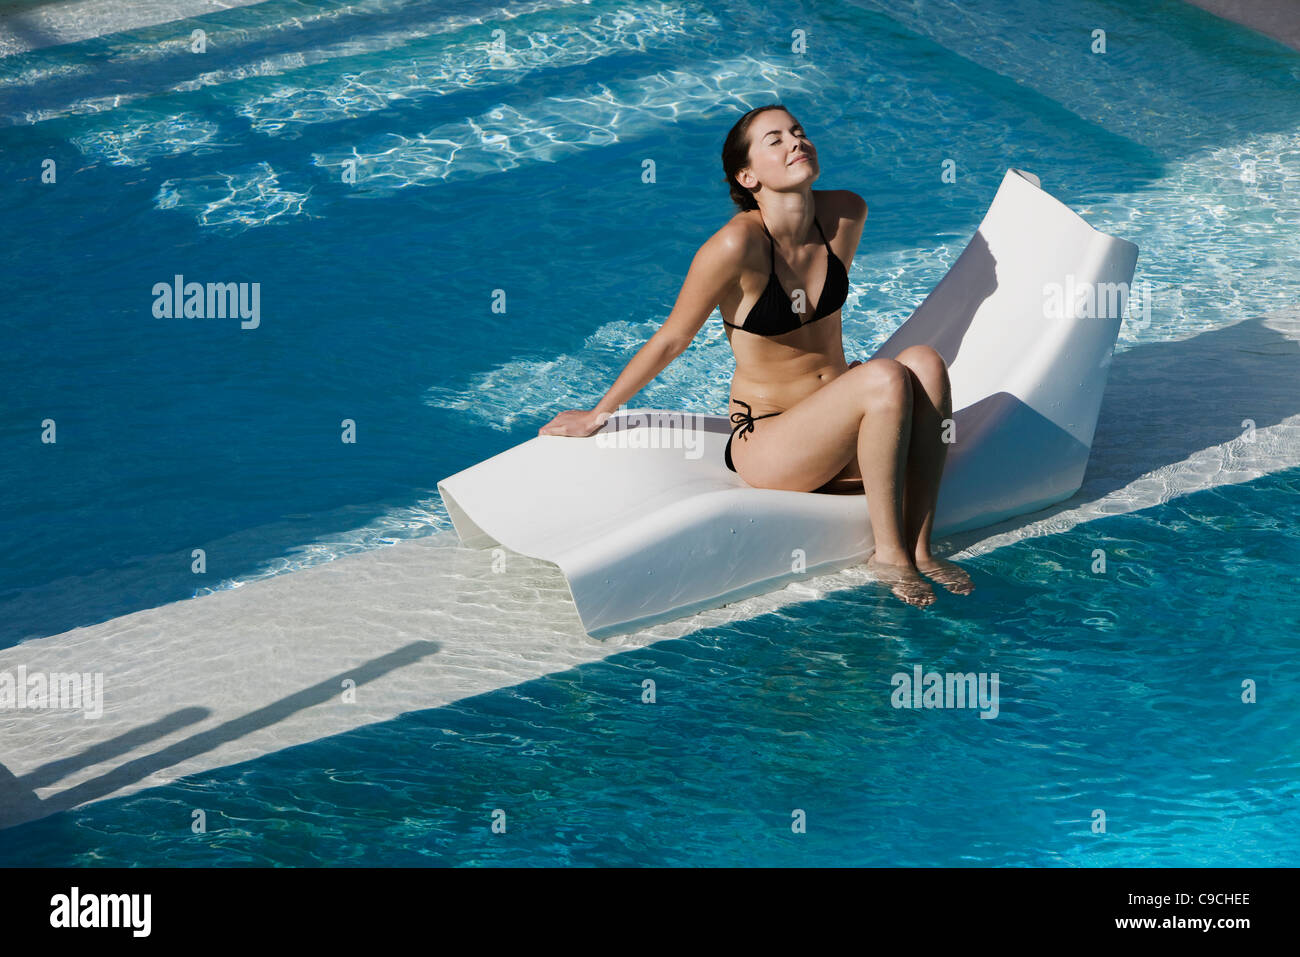 Young woman sitting on poolside deckchair dangling feet into water - Stock Image